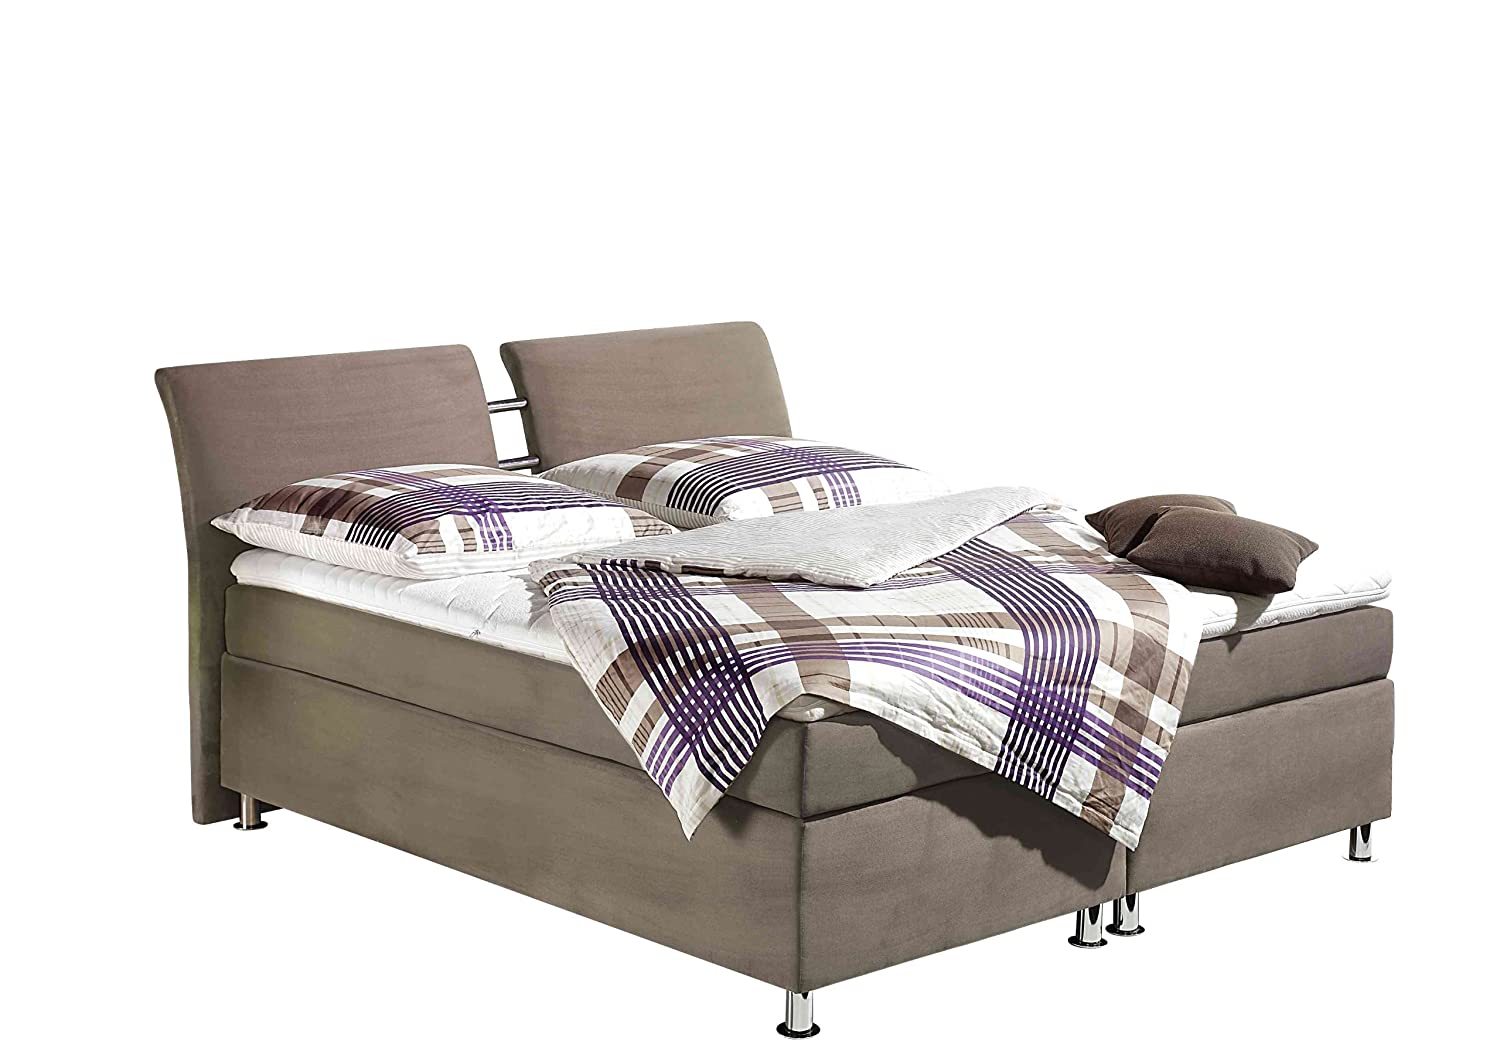 Maintal Betten 235860-4750 Boxspringbett Dean 180 x 200 cm, taupe